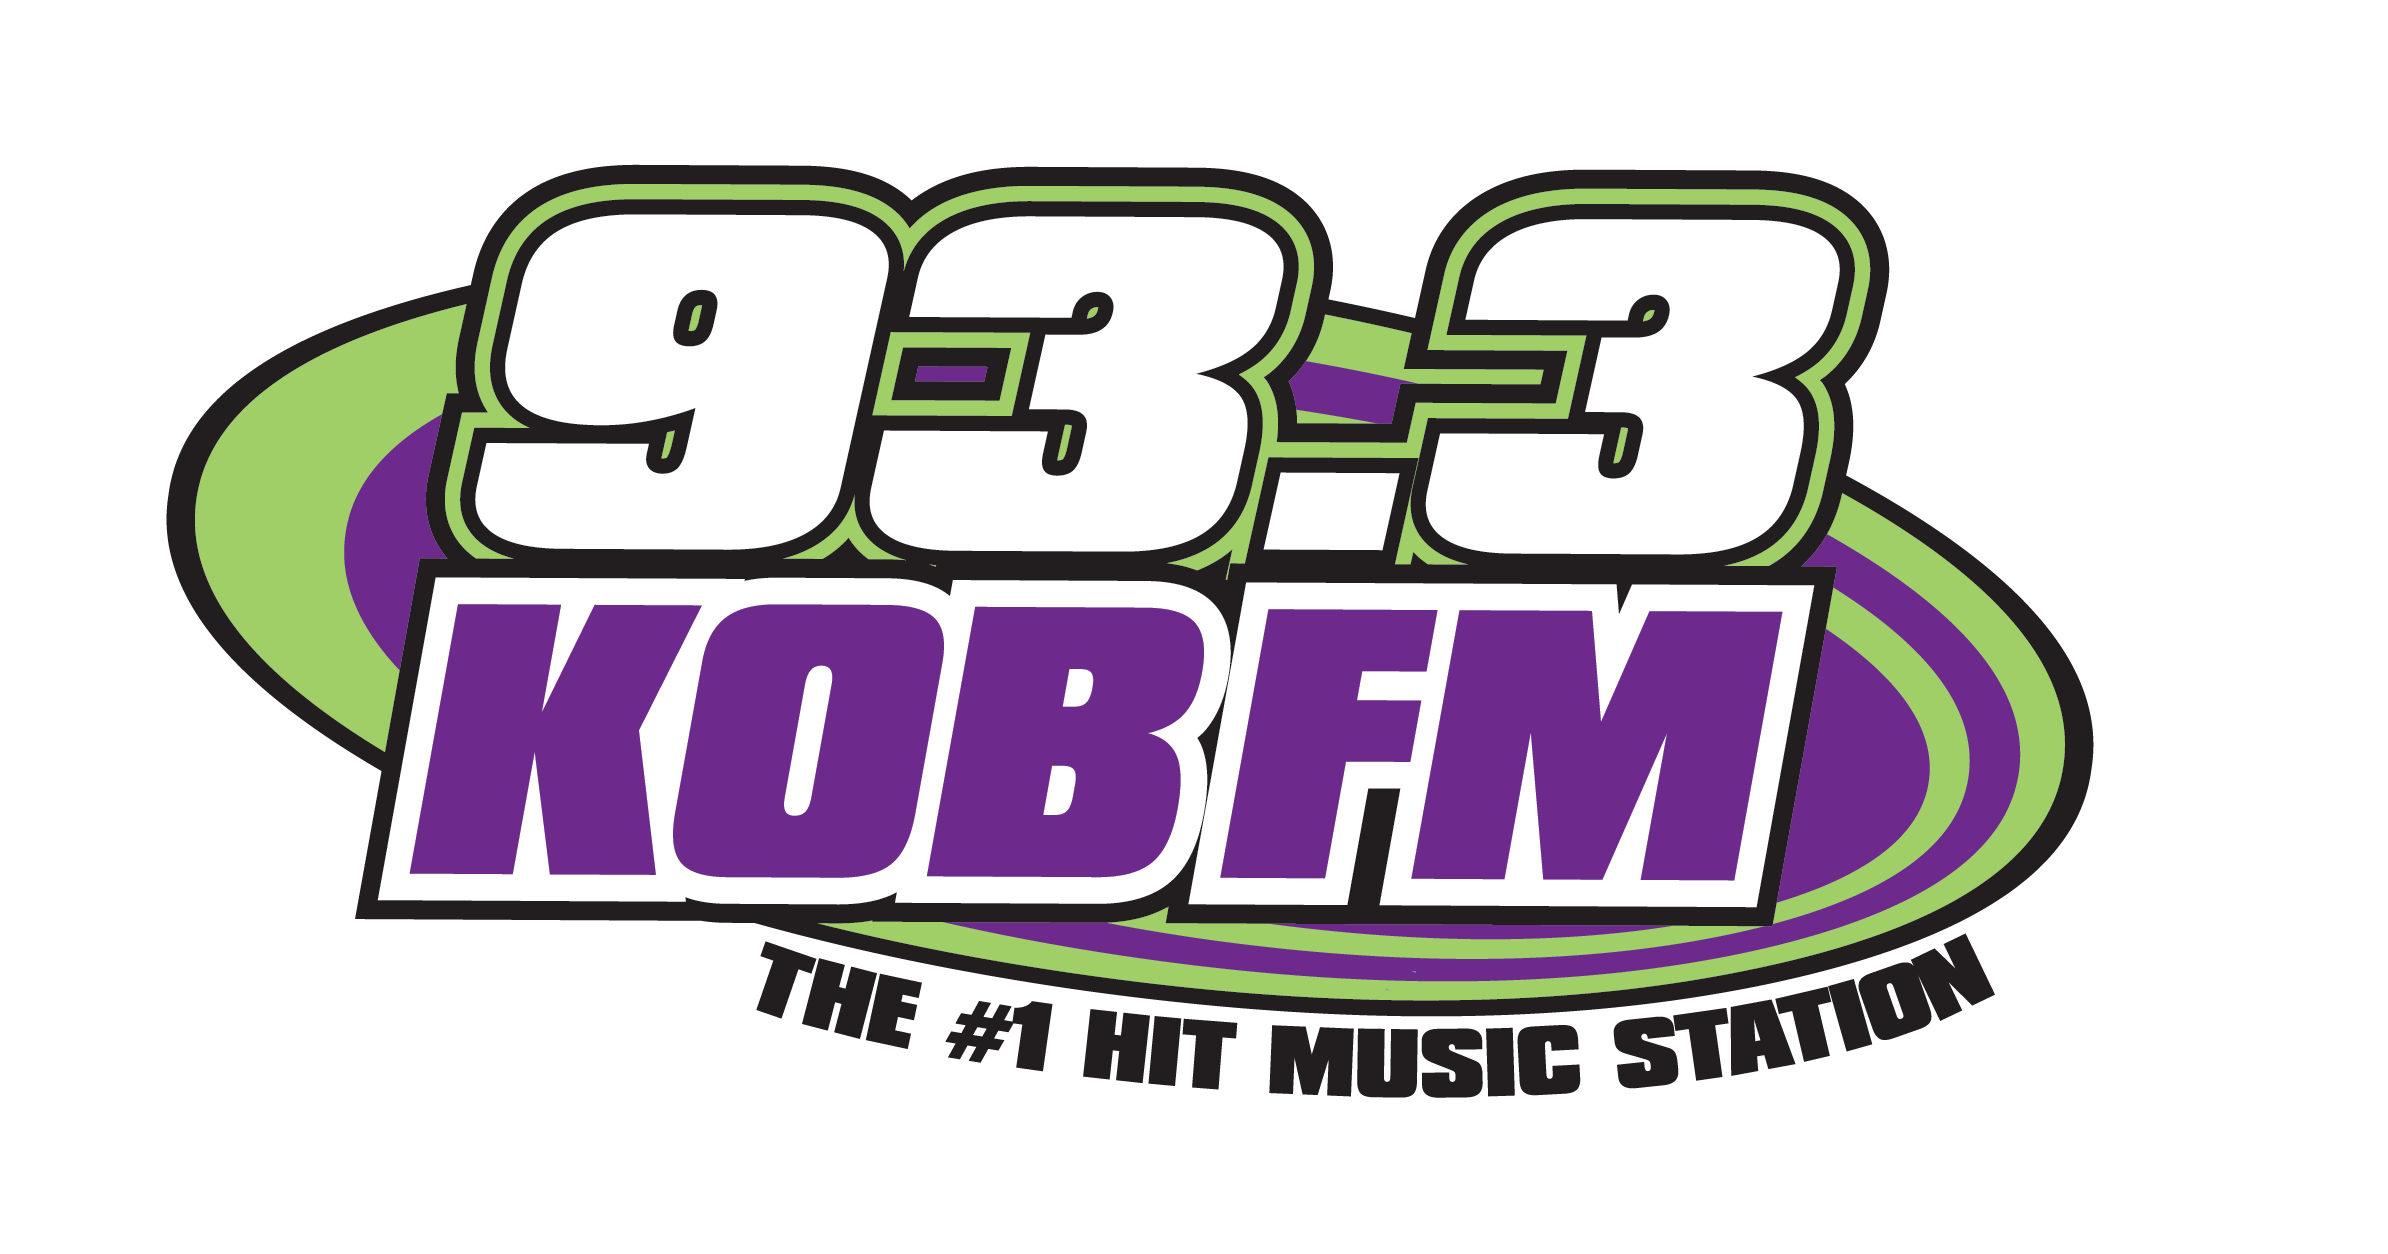 Copy of KOB-FM-1MUSIC-TRANS